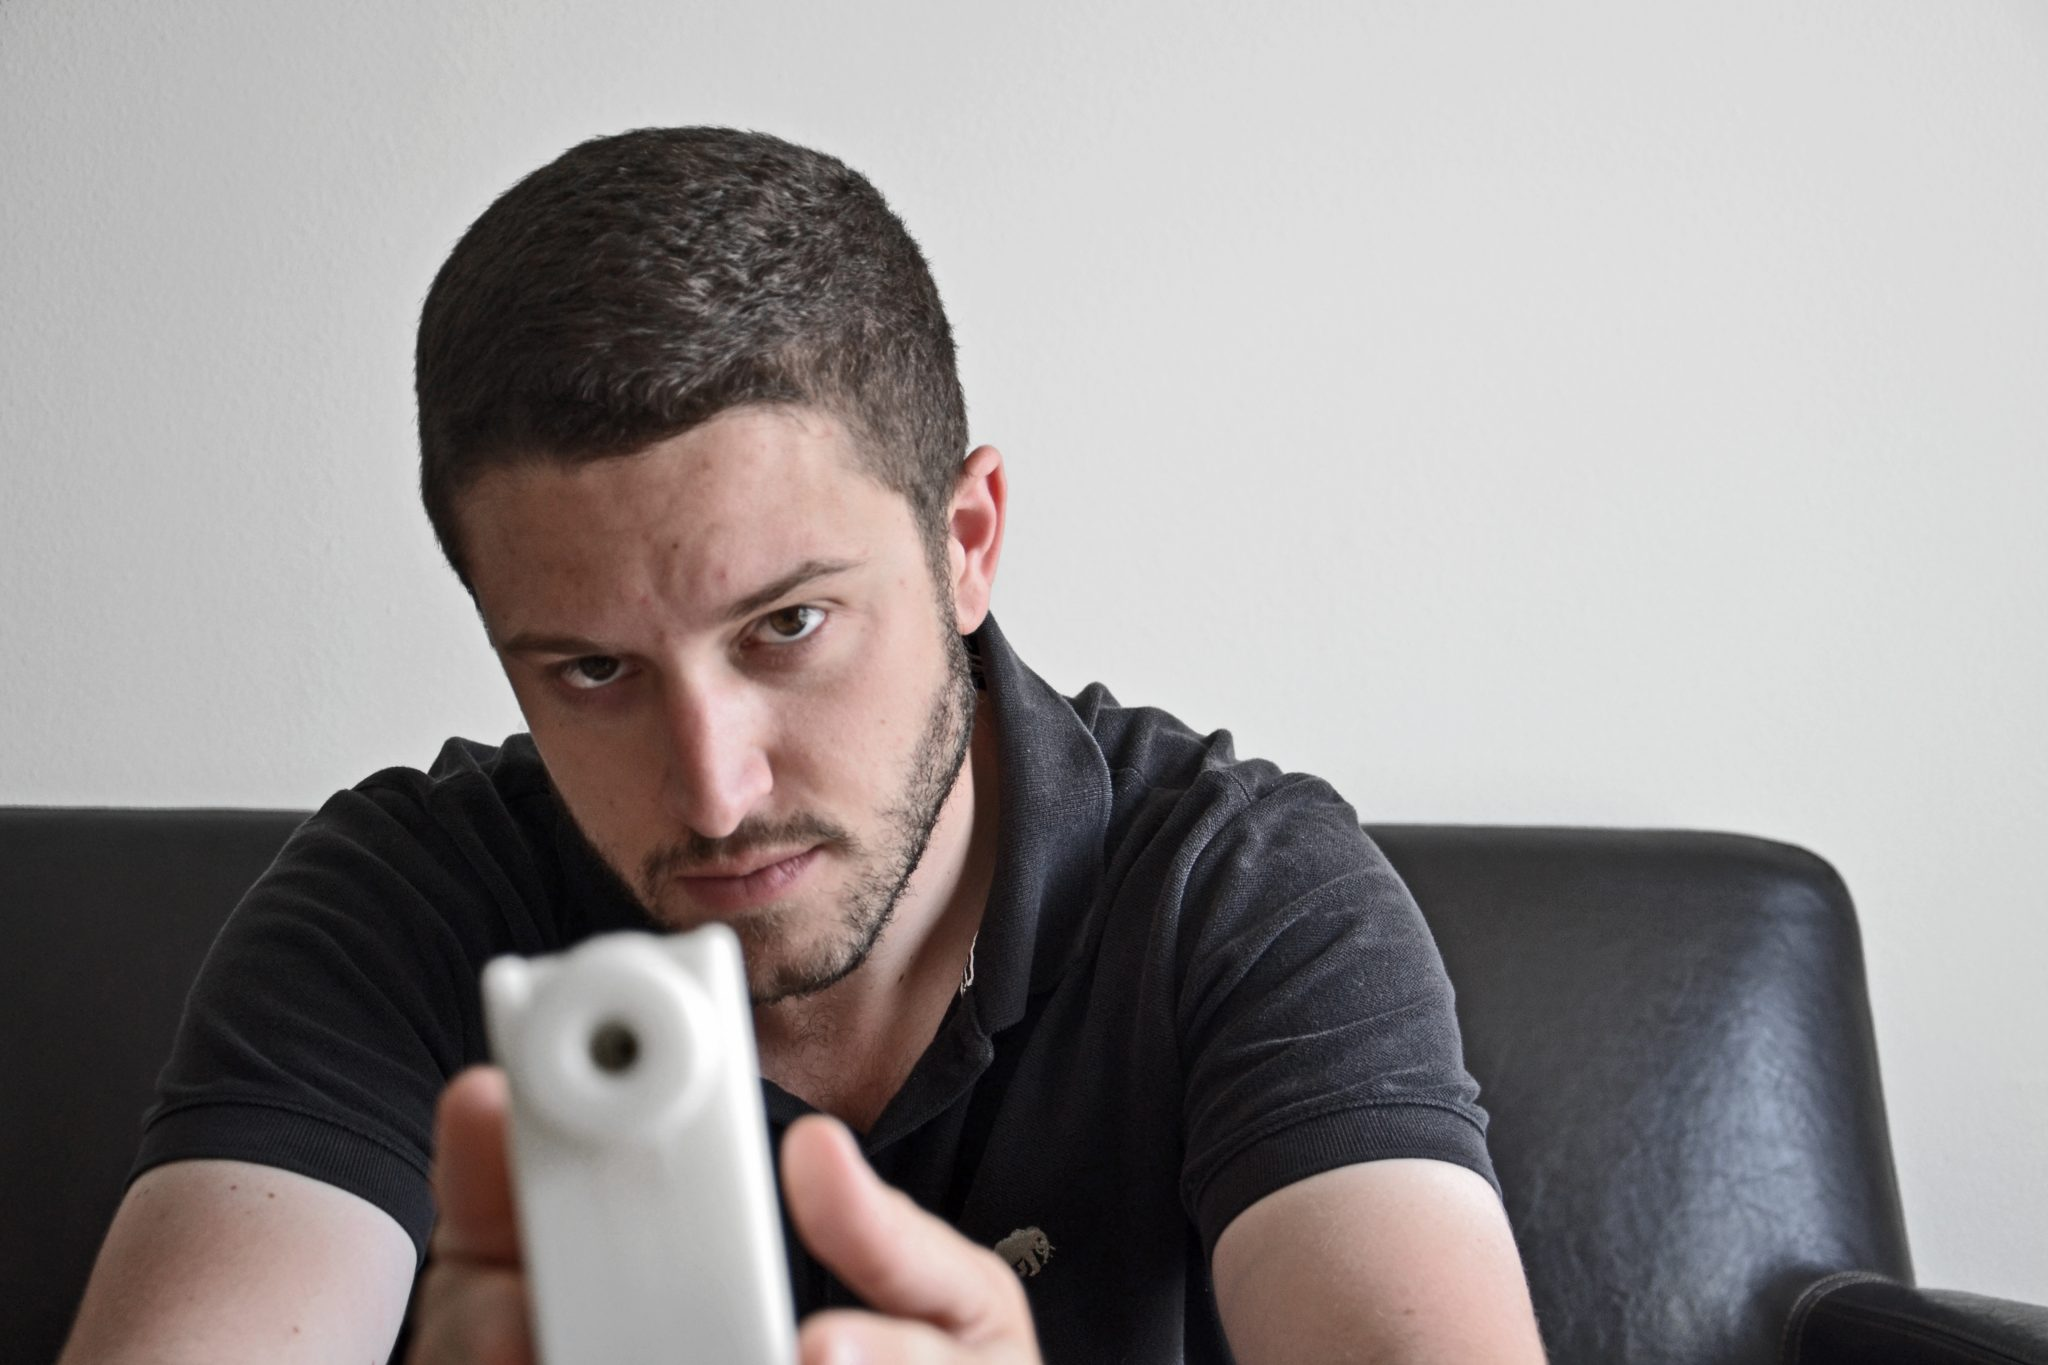 Defense Distributed founder Cody Wilson holds the 3D printed Plastic Liberator. Photo by Lorenza Baroncelli